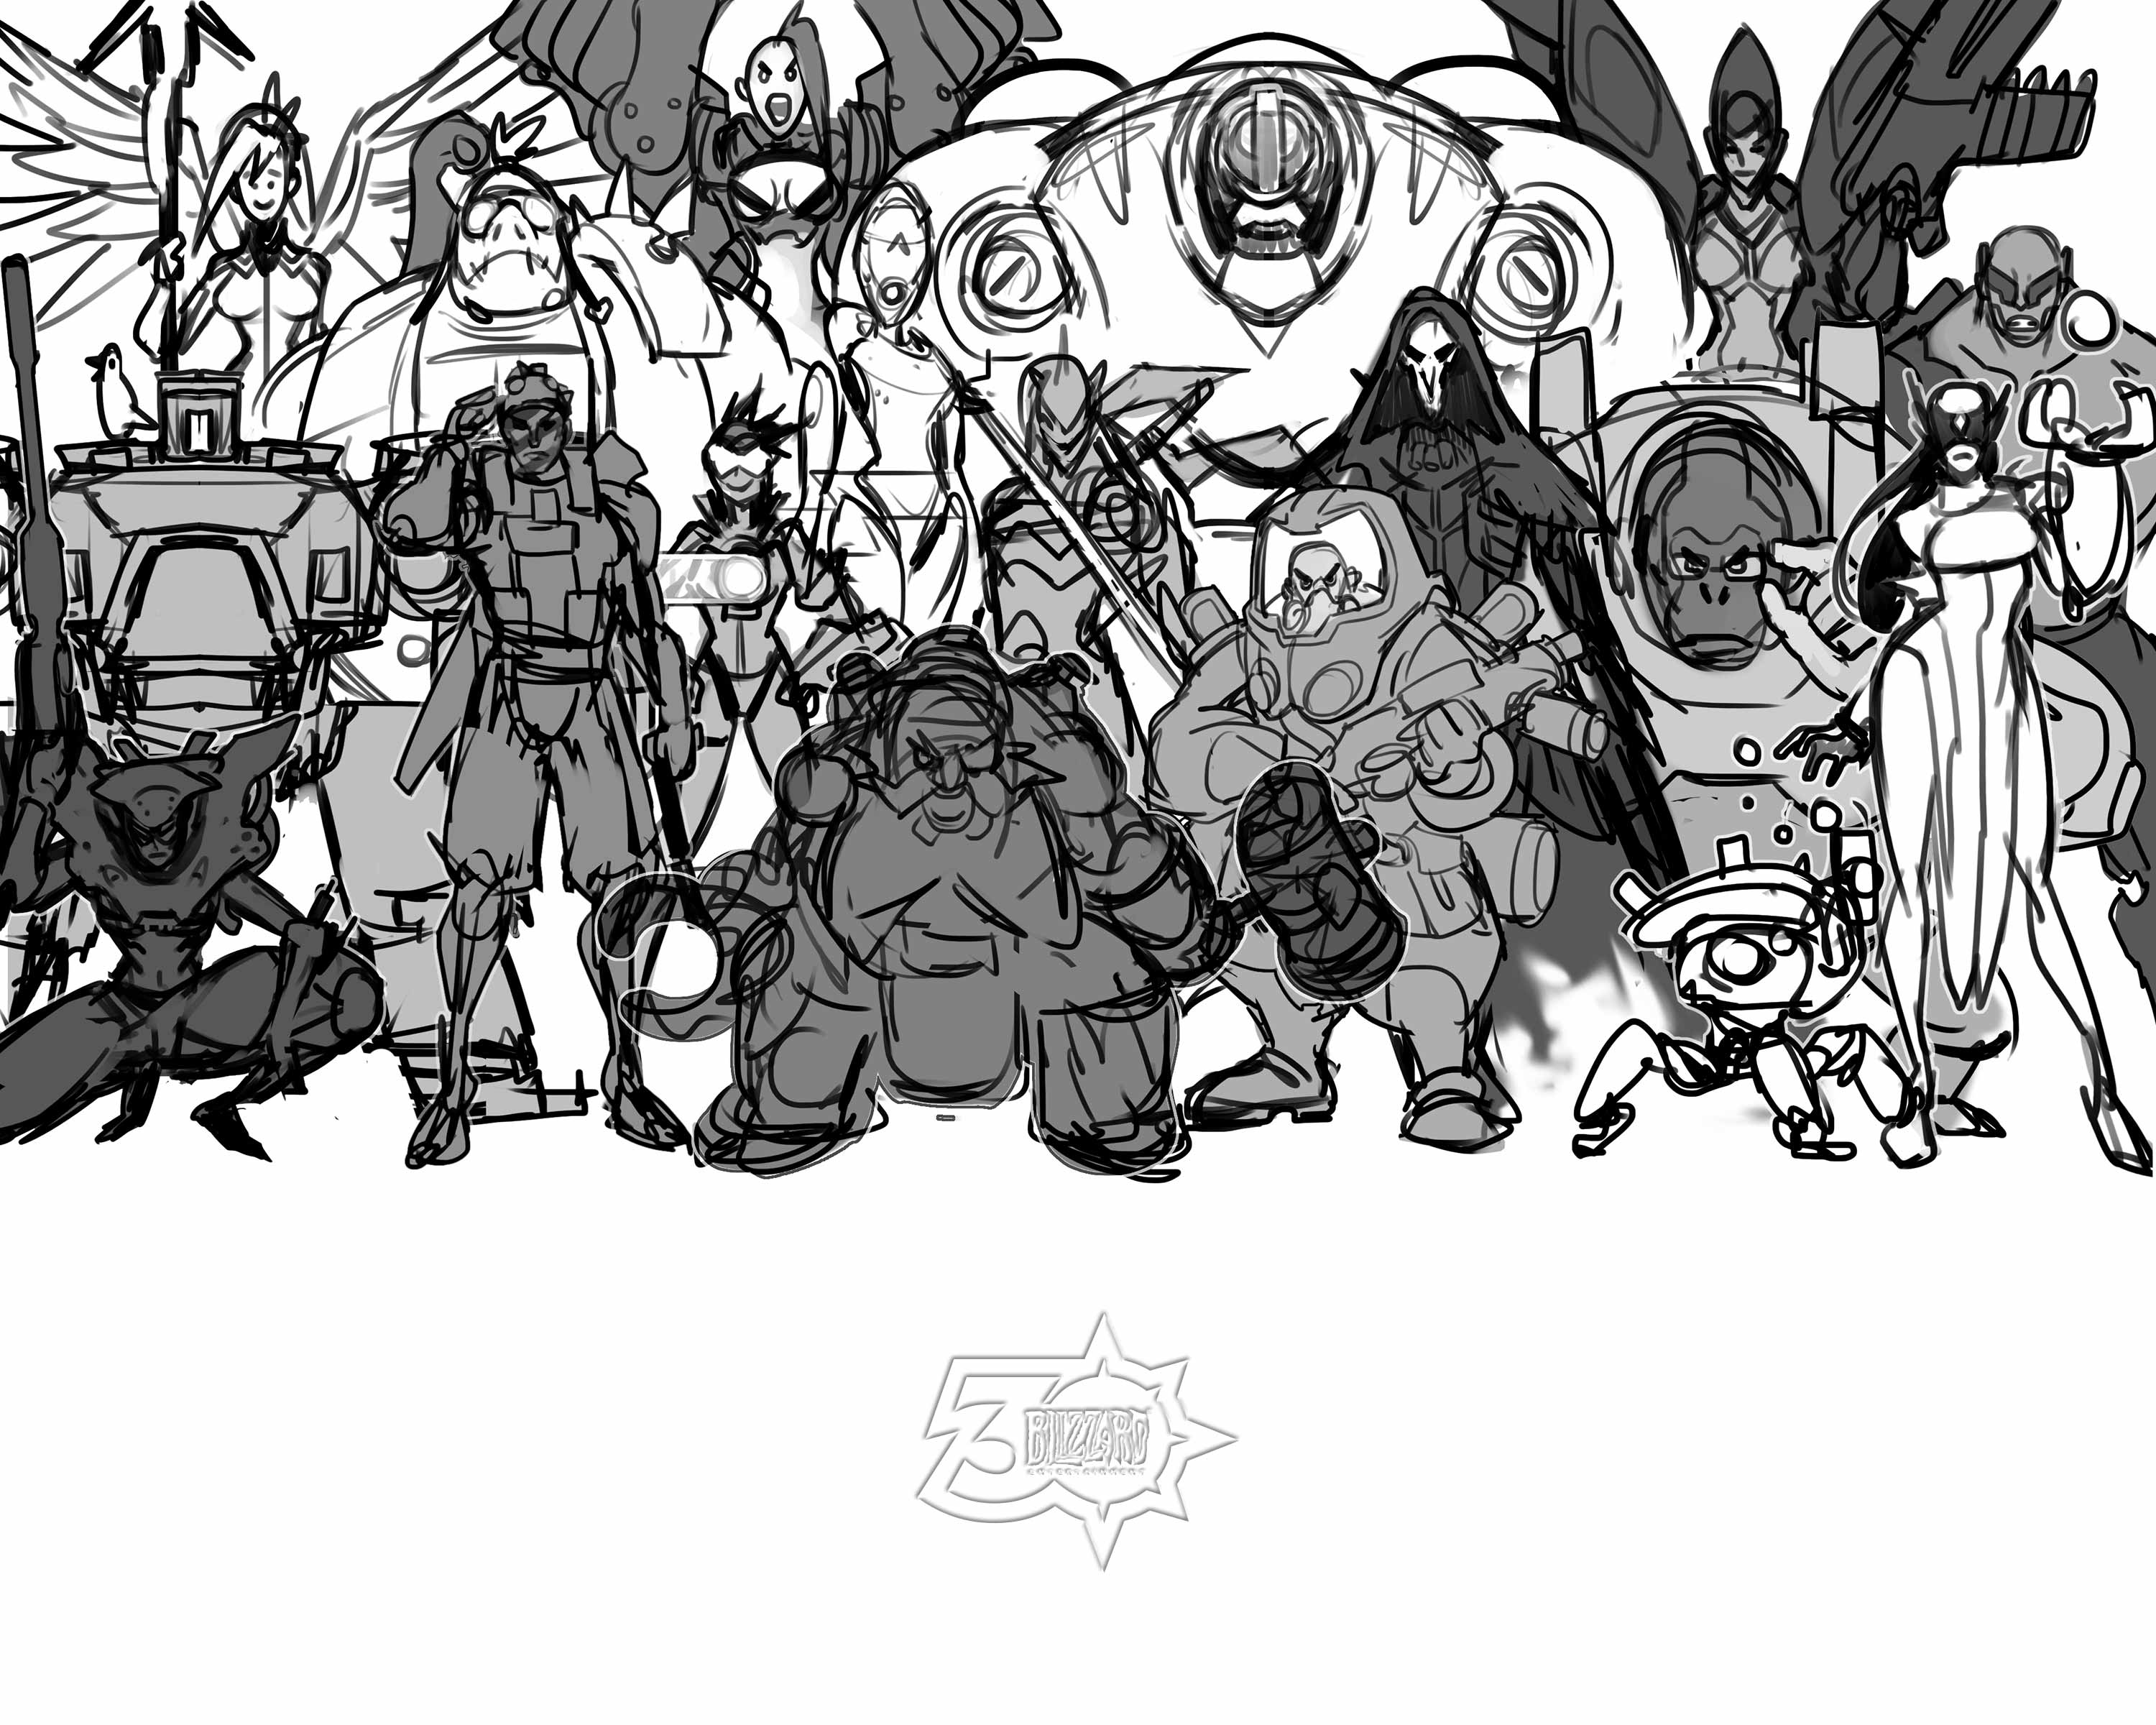 """1a. Overwatch Original Sketch Concept Art Print 10"""" x 8"""", From the Vault - Limited Release.jpg"""